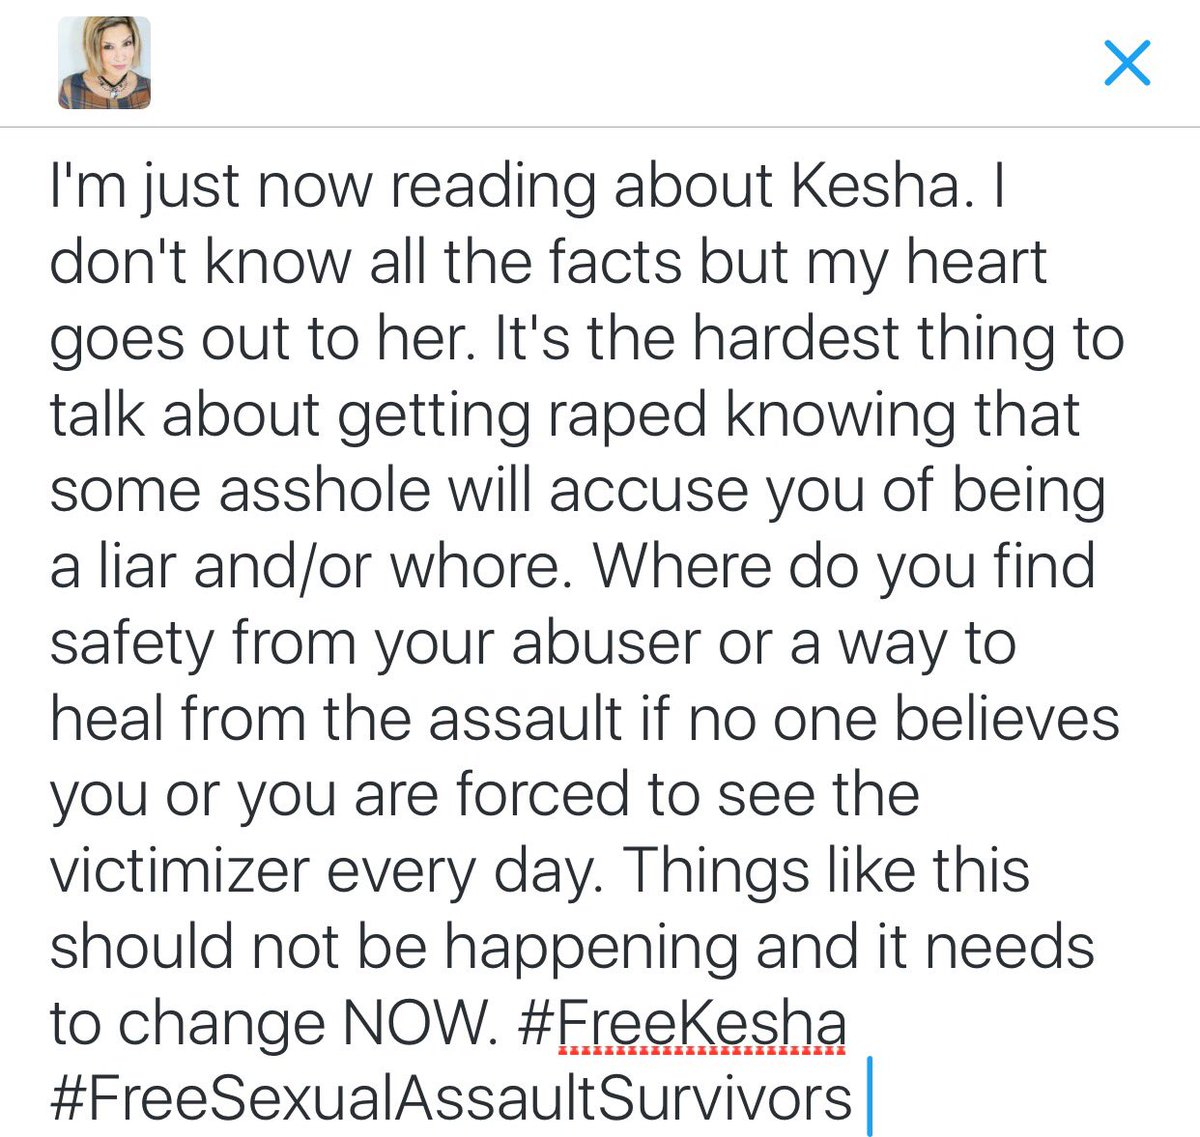 Sexual/physical abuse needs 2B talked about, not avoided or dismissed. #WeNeedChange #StrengthenHumanity #FreeKesha https://t.co/BdY2fmb97I